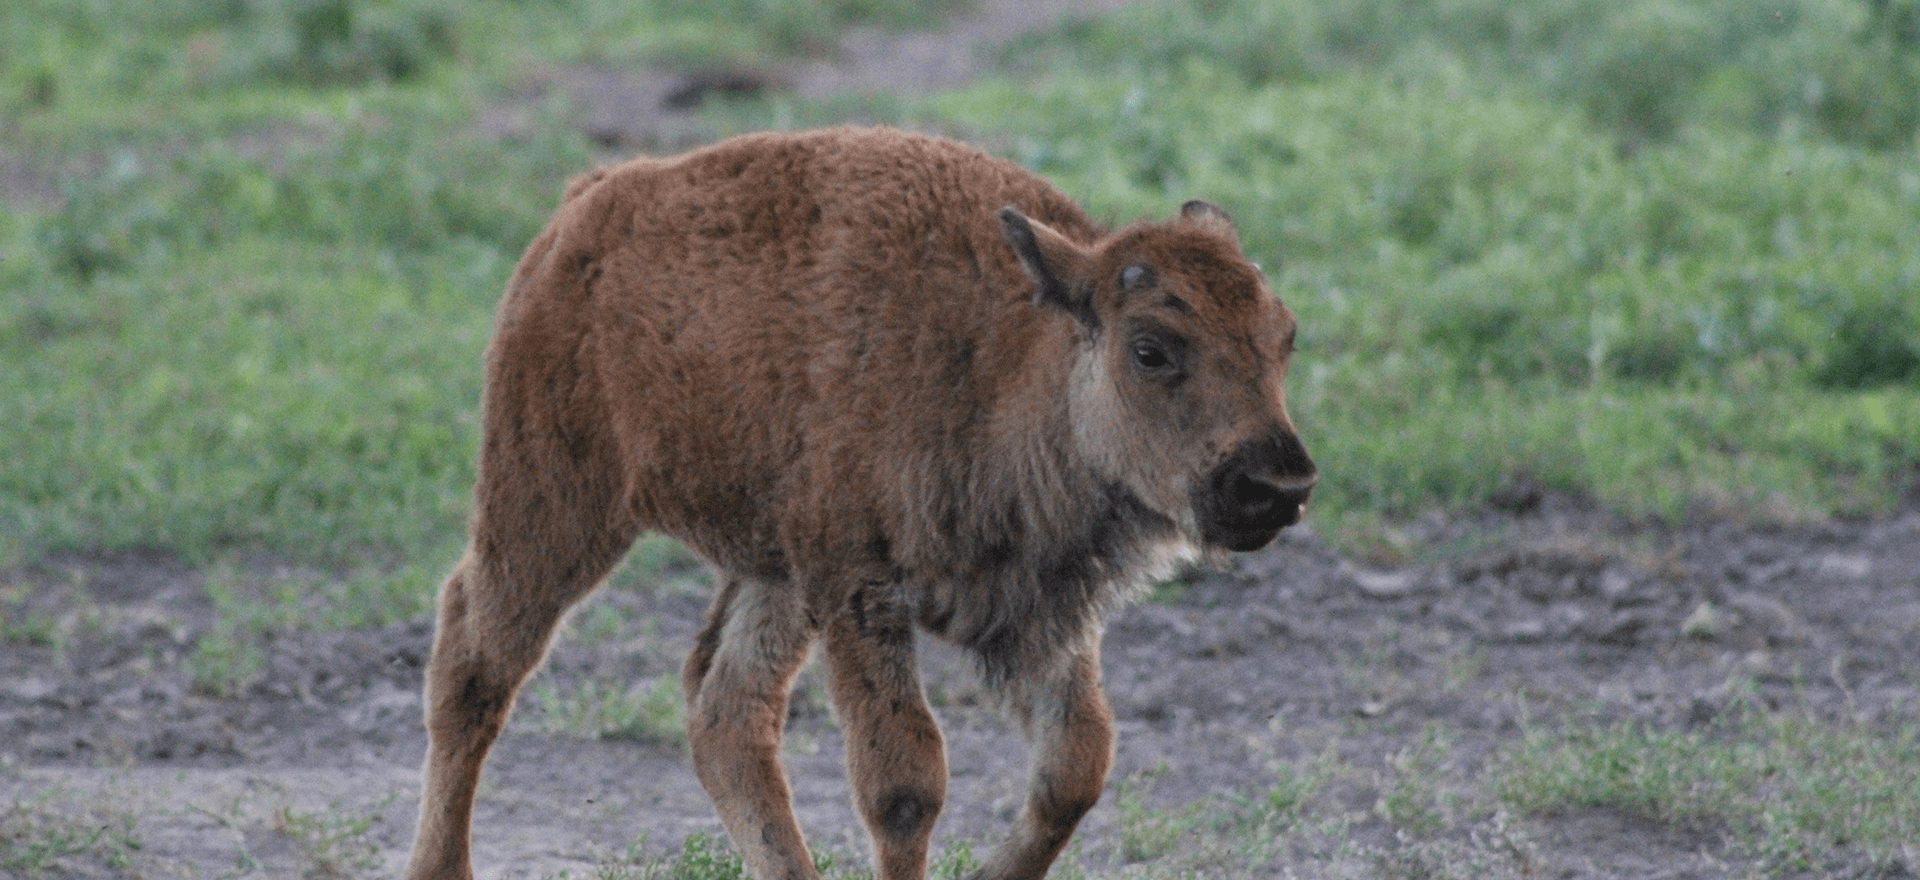 Baby bison walking